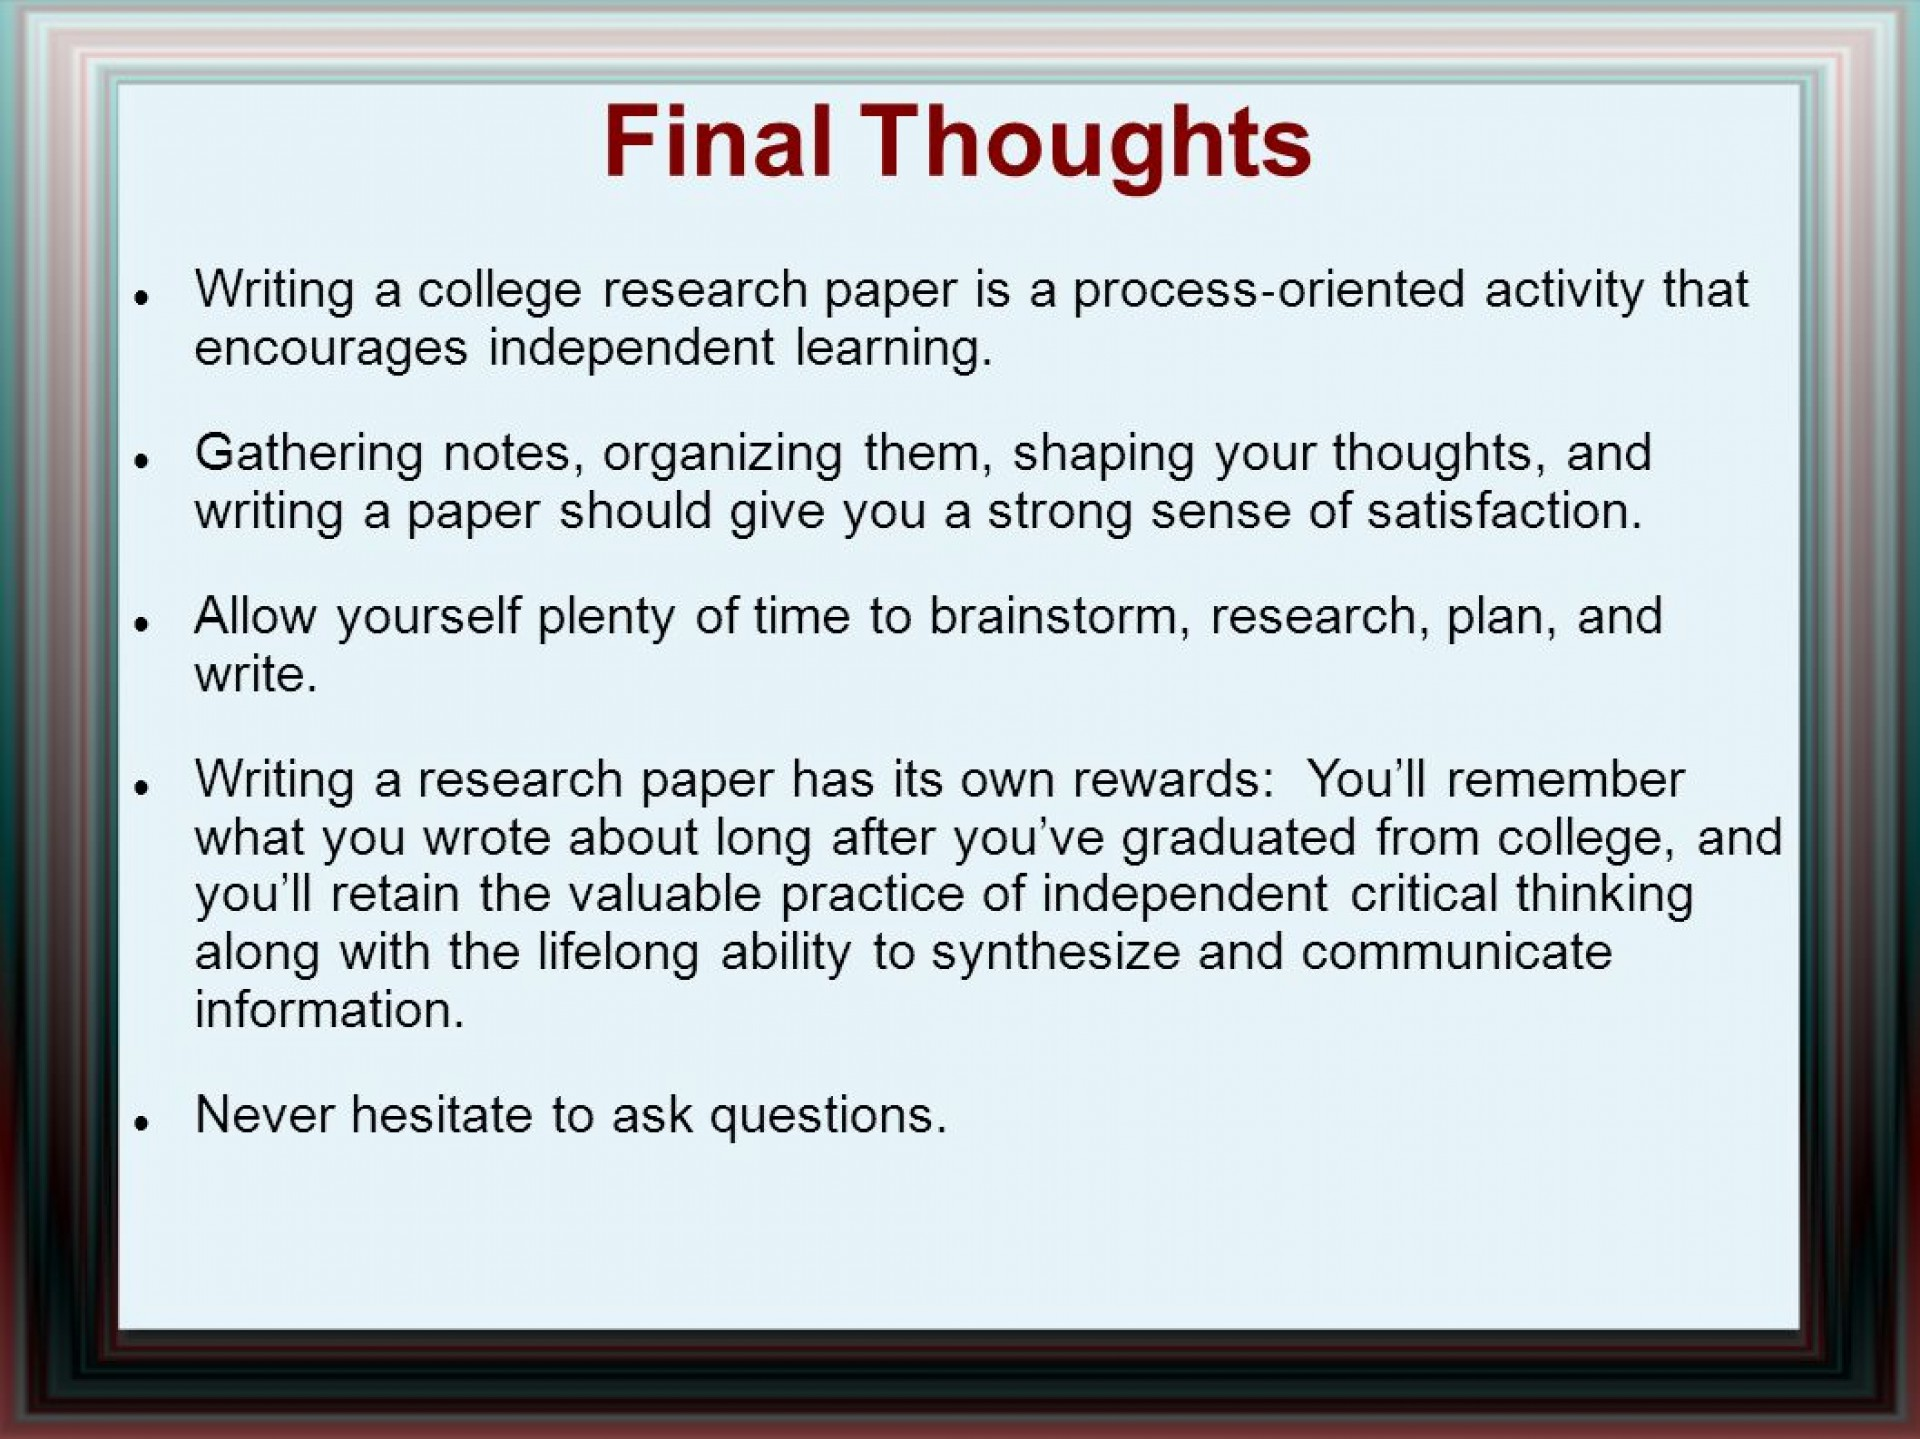 014 Research Paper Writing Process Ppt How Outstanding To Publish Write Abstract For Prepare 1920